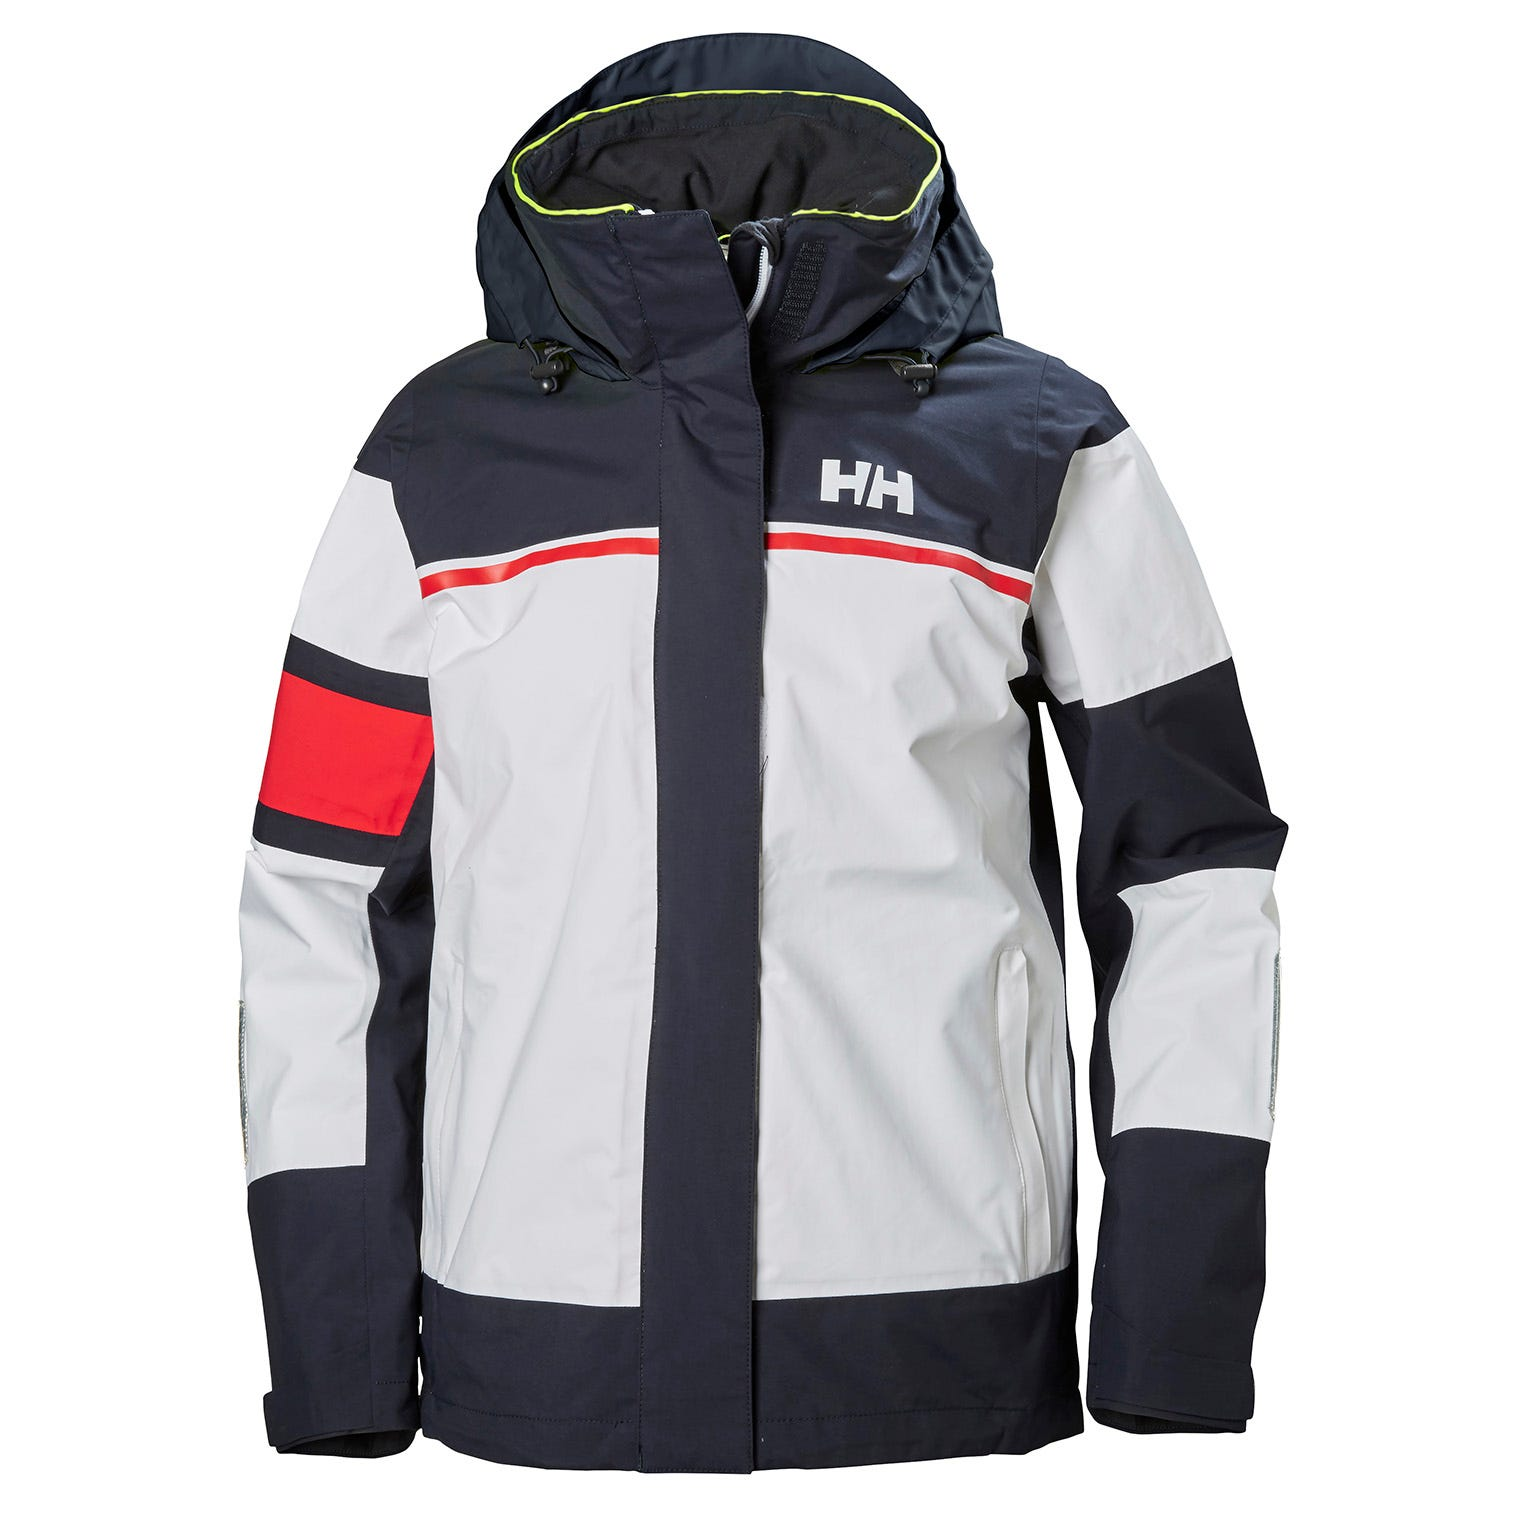 W Salt Light Jacket | Stripet Seilejakke Med HH Flagg For